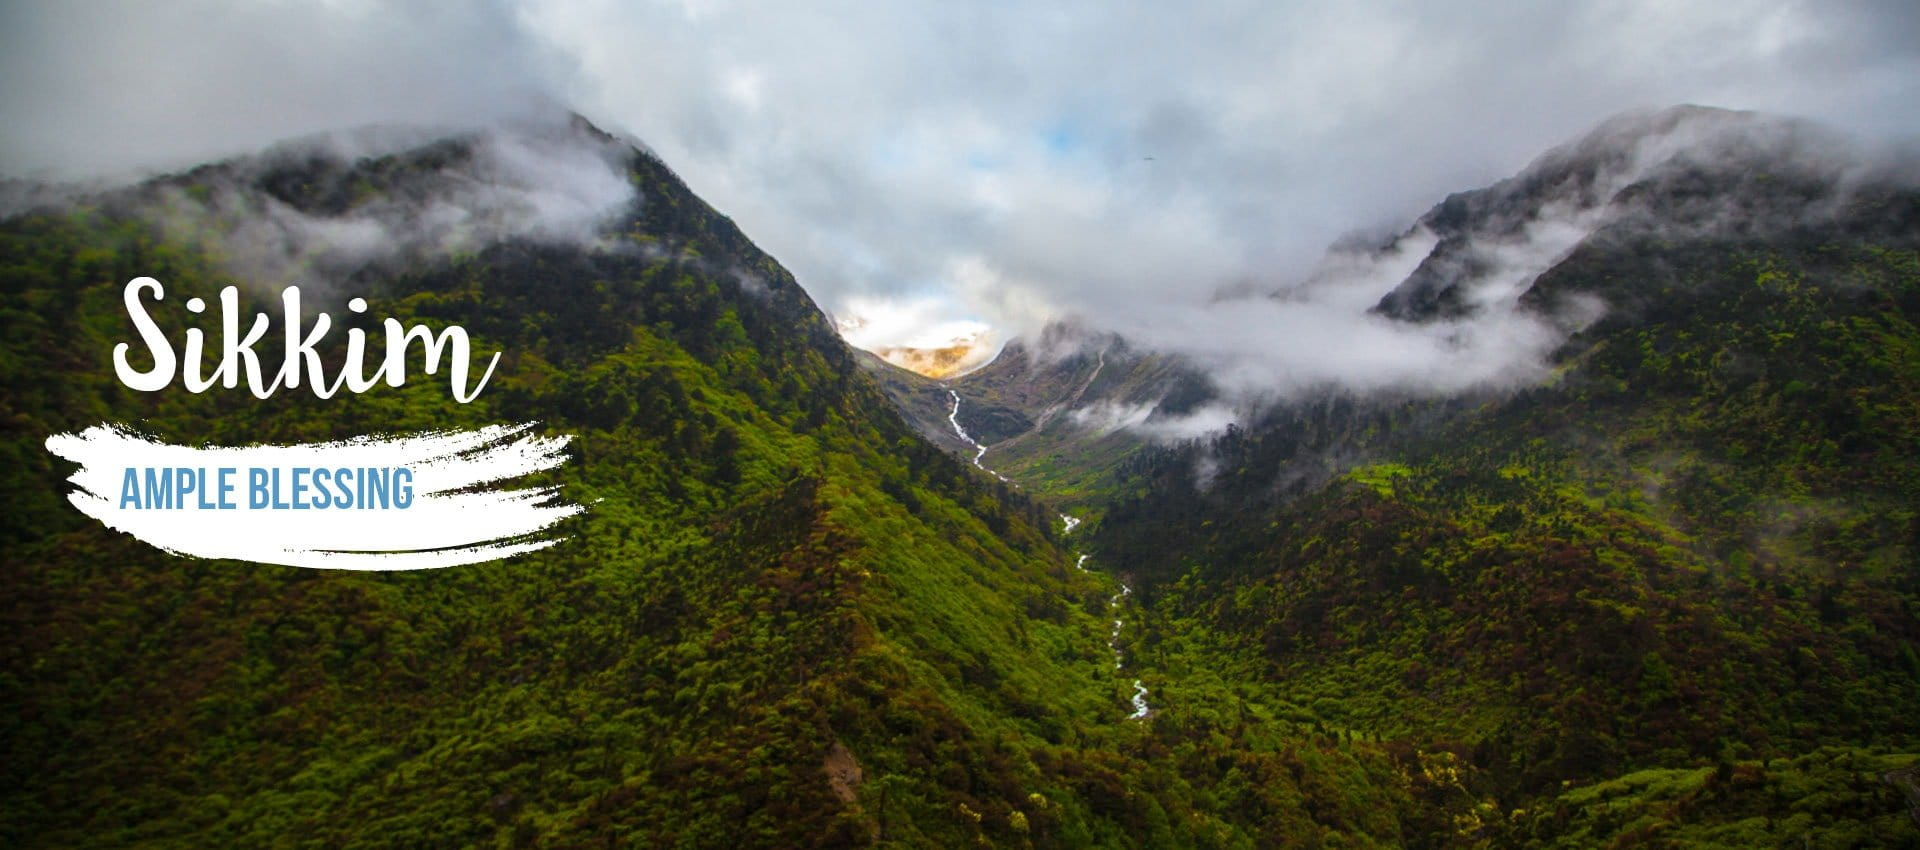 Sikkim Tour and travel - Av tours